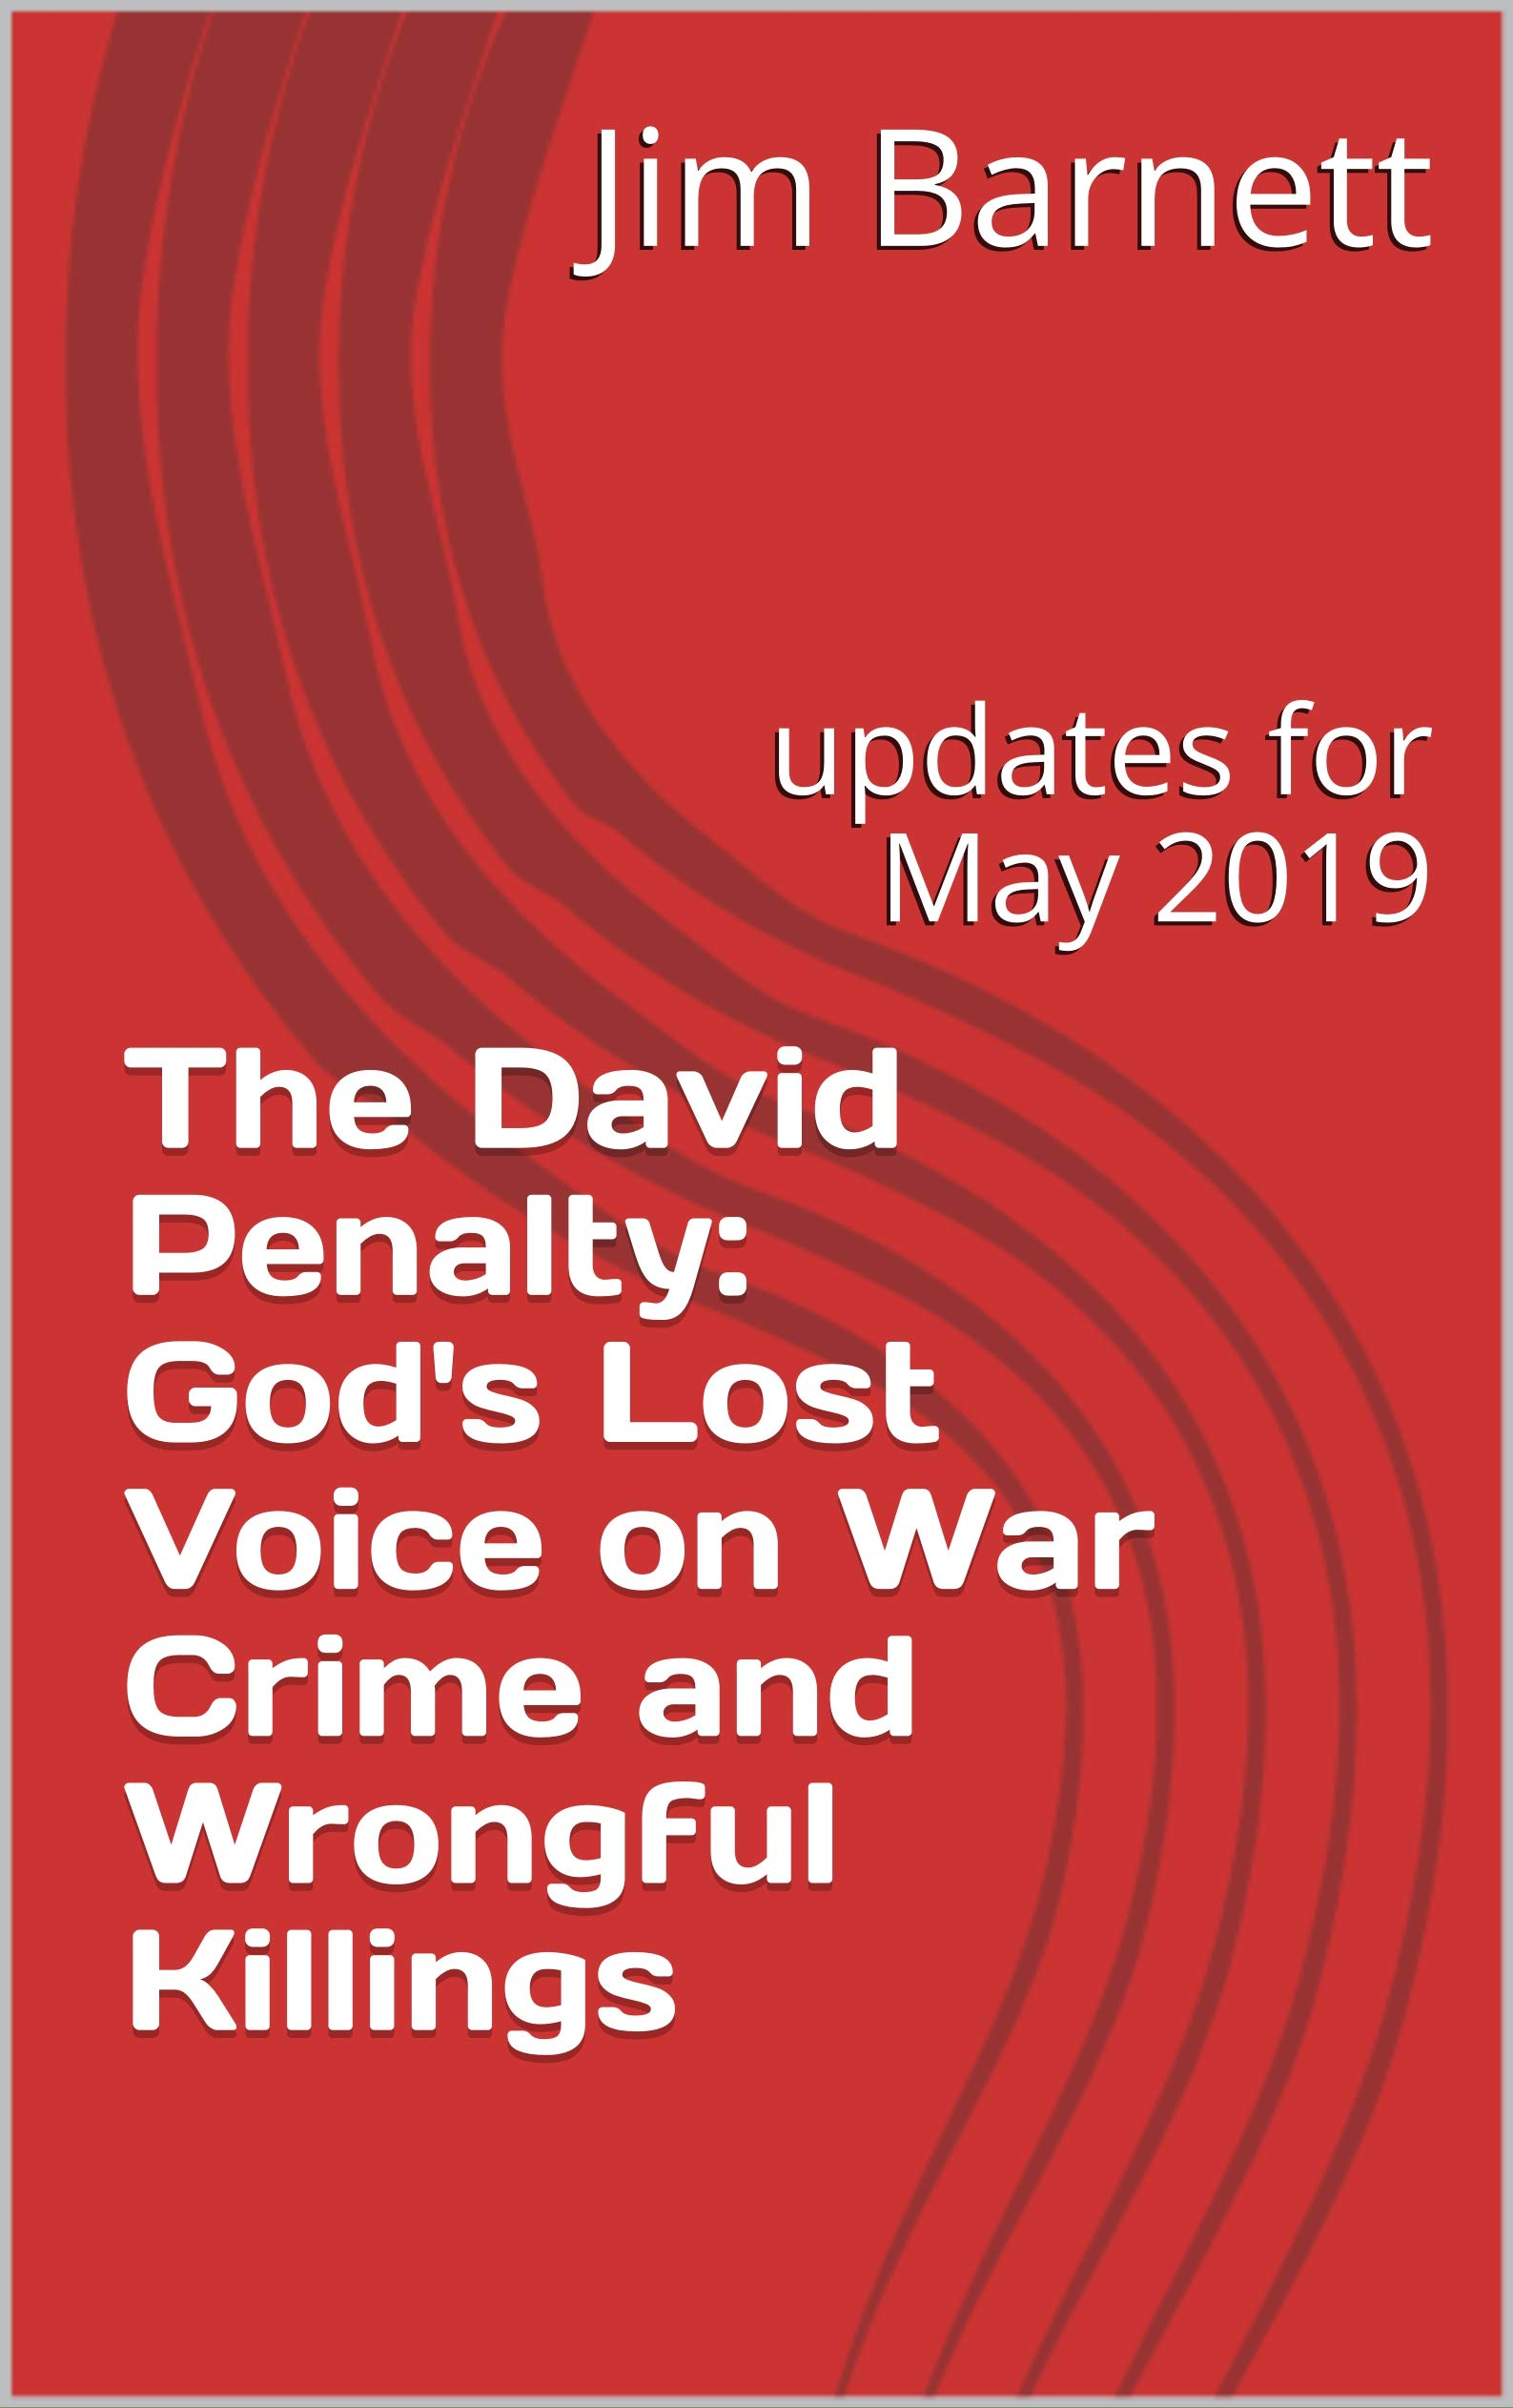 The David Penalty: God's Lost Voice on War Crime and Wrongful Killings: updates for May 2019